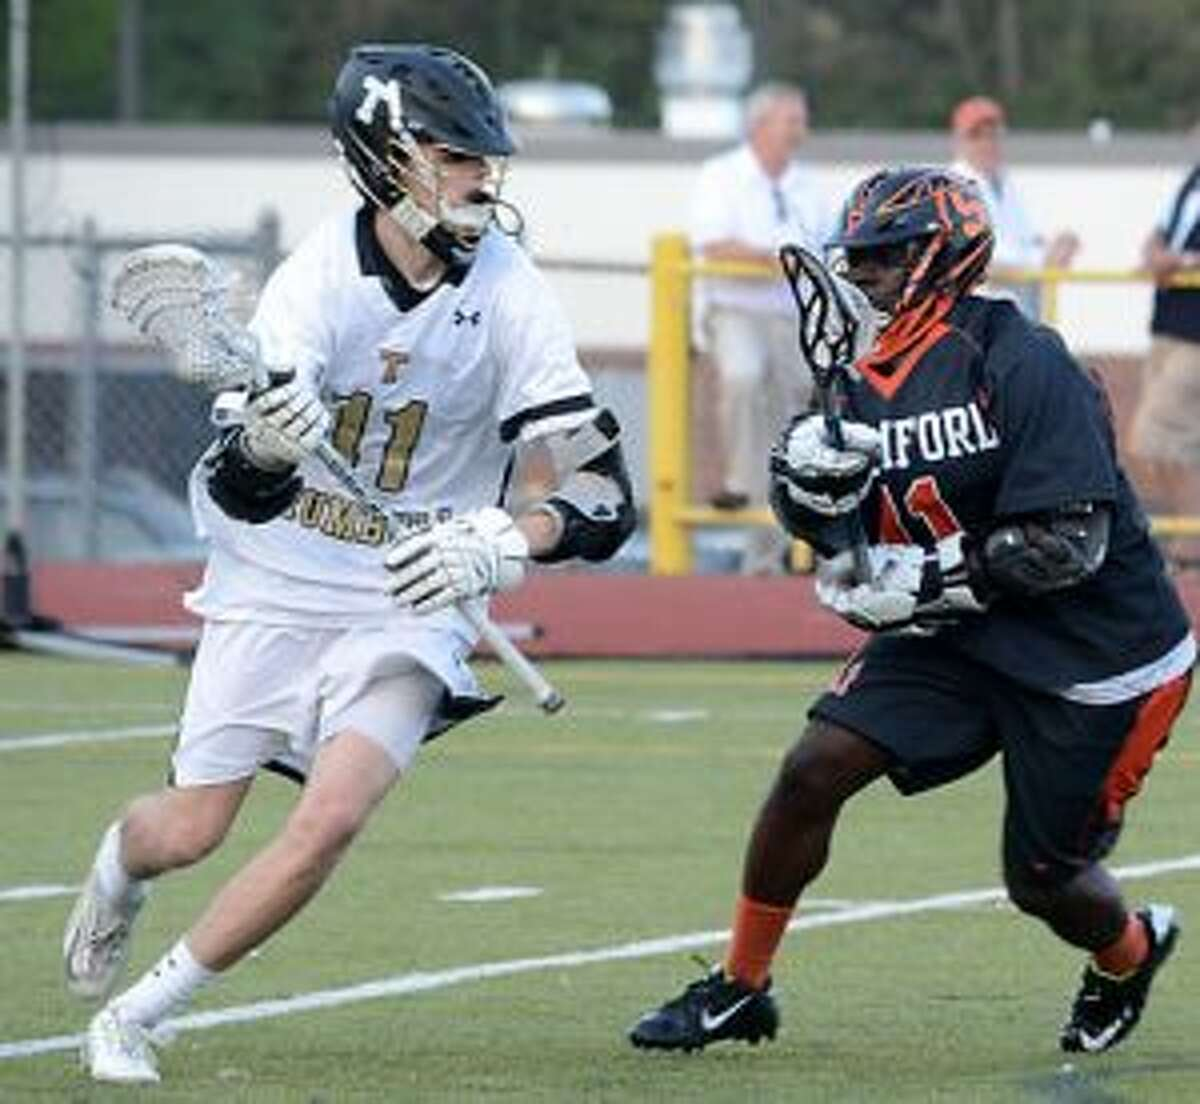 Jack Fairfield advances the ball during the match with Stamford High. - Andy Hutchison photo